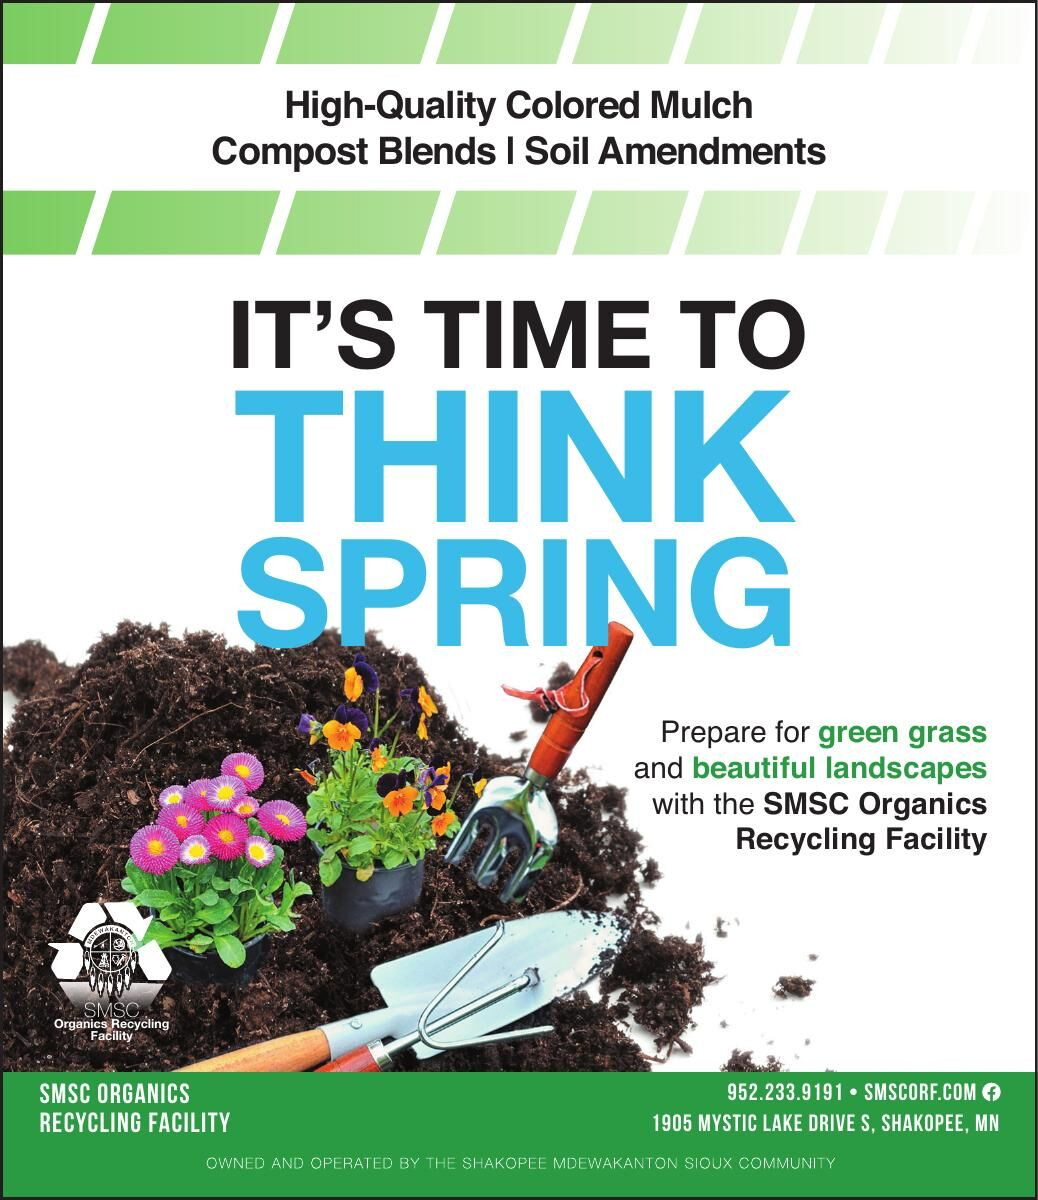 High-Quality Colored Mulch Compost